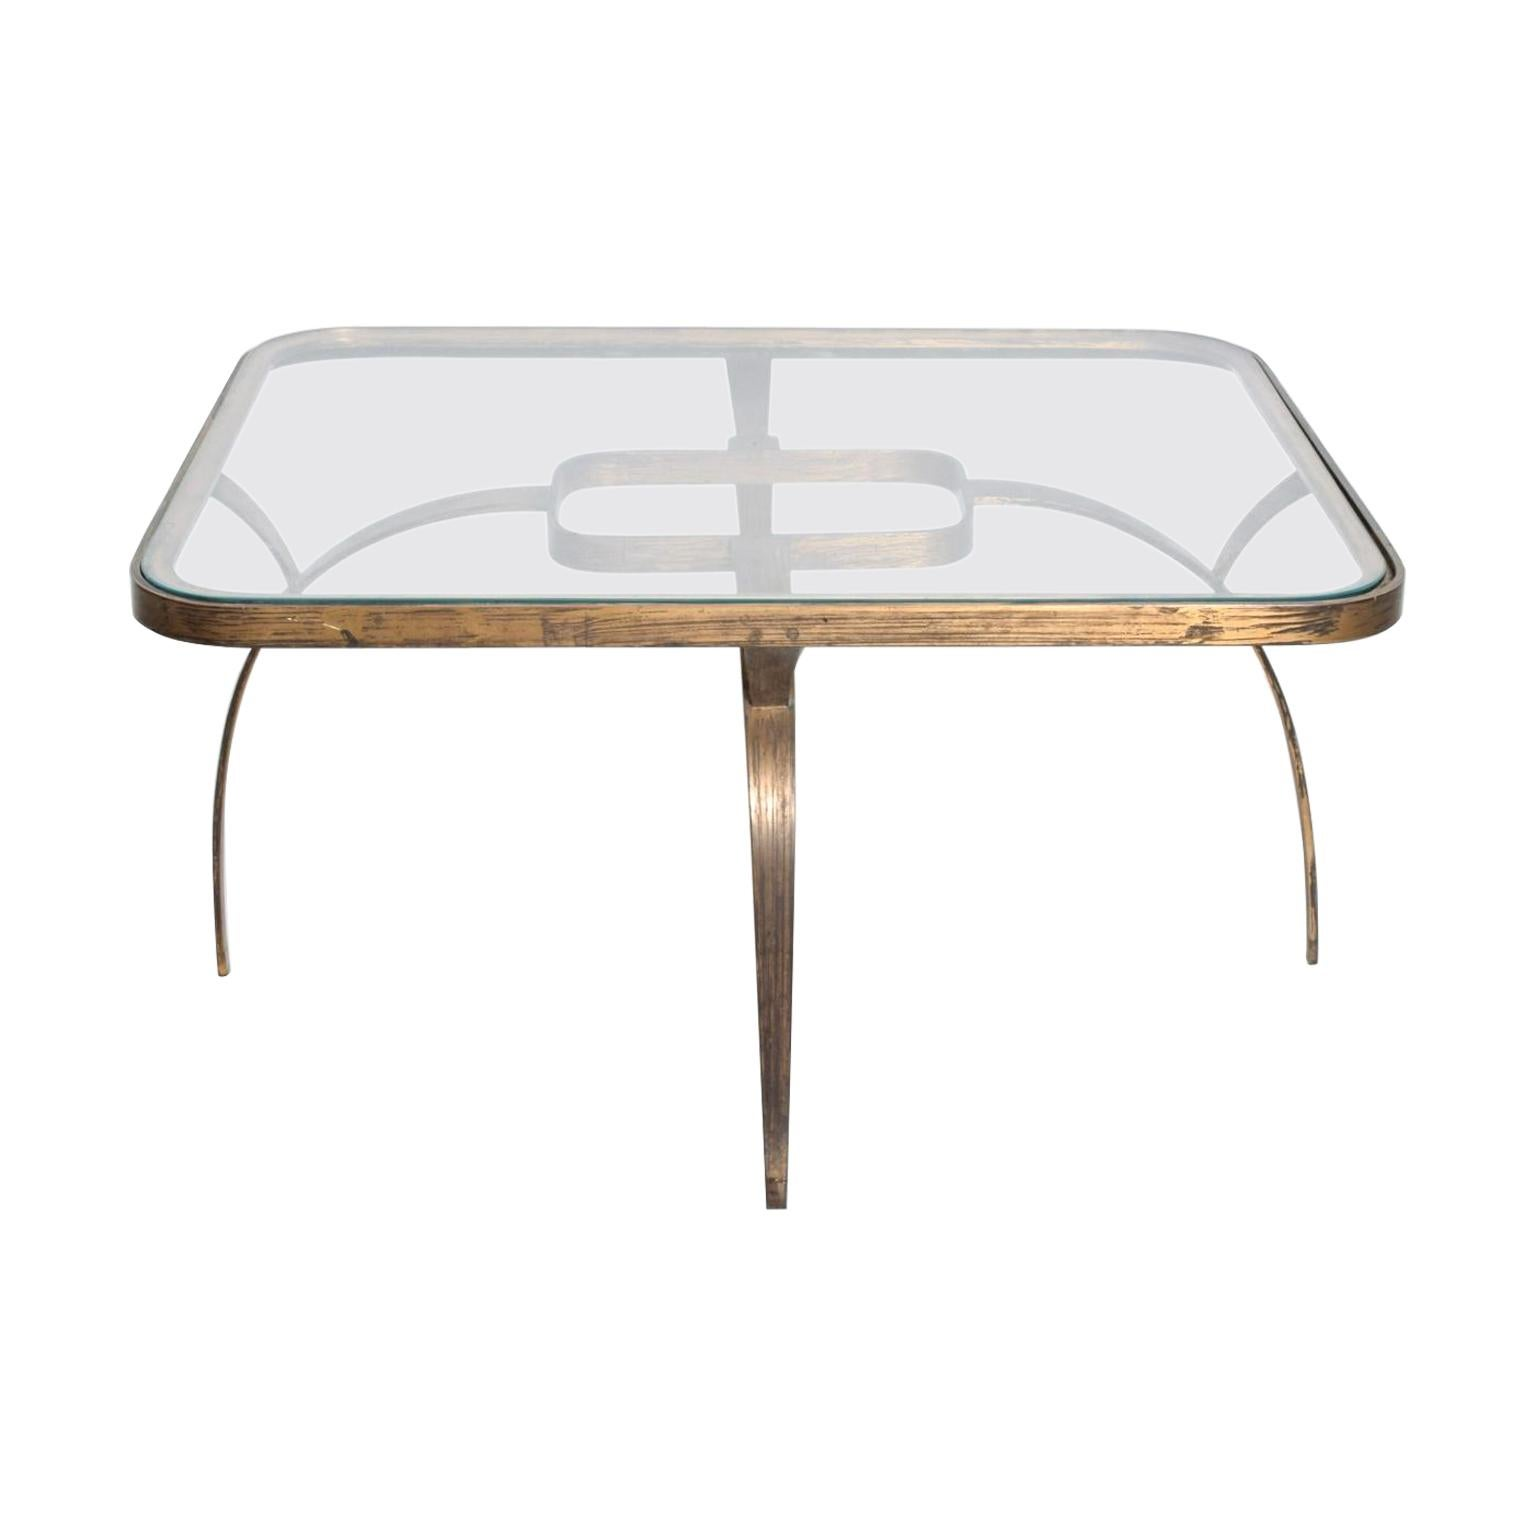 Midcentury Mexican Modernist Side Coffee Table Arturo Pani Sculptural Bronze